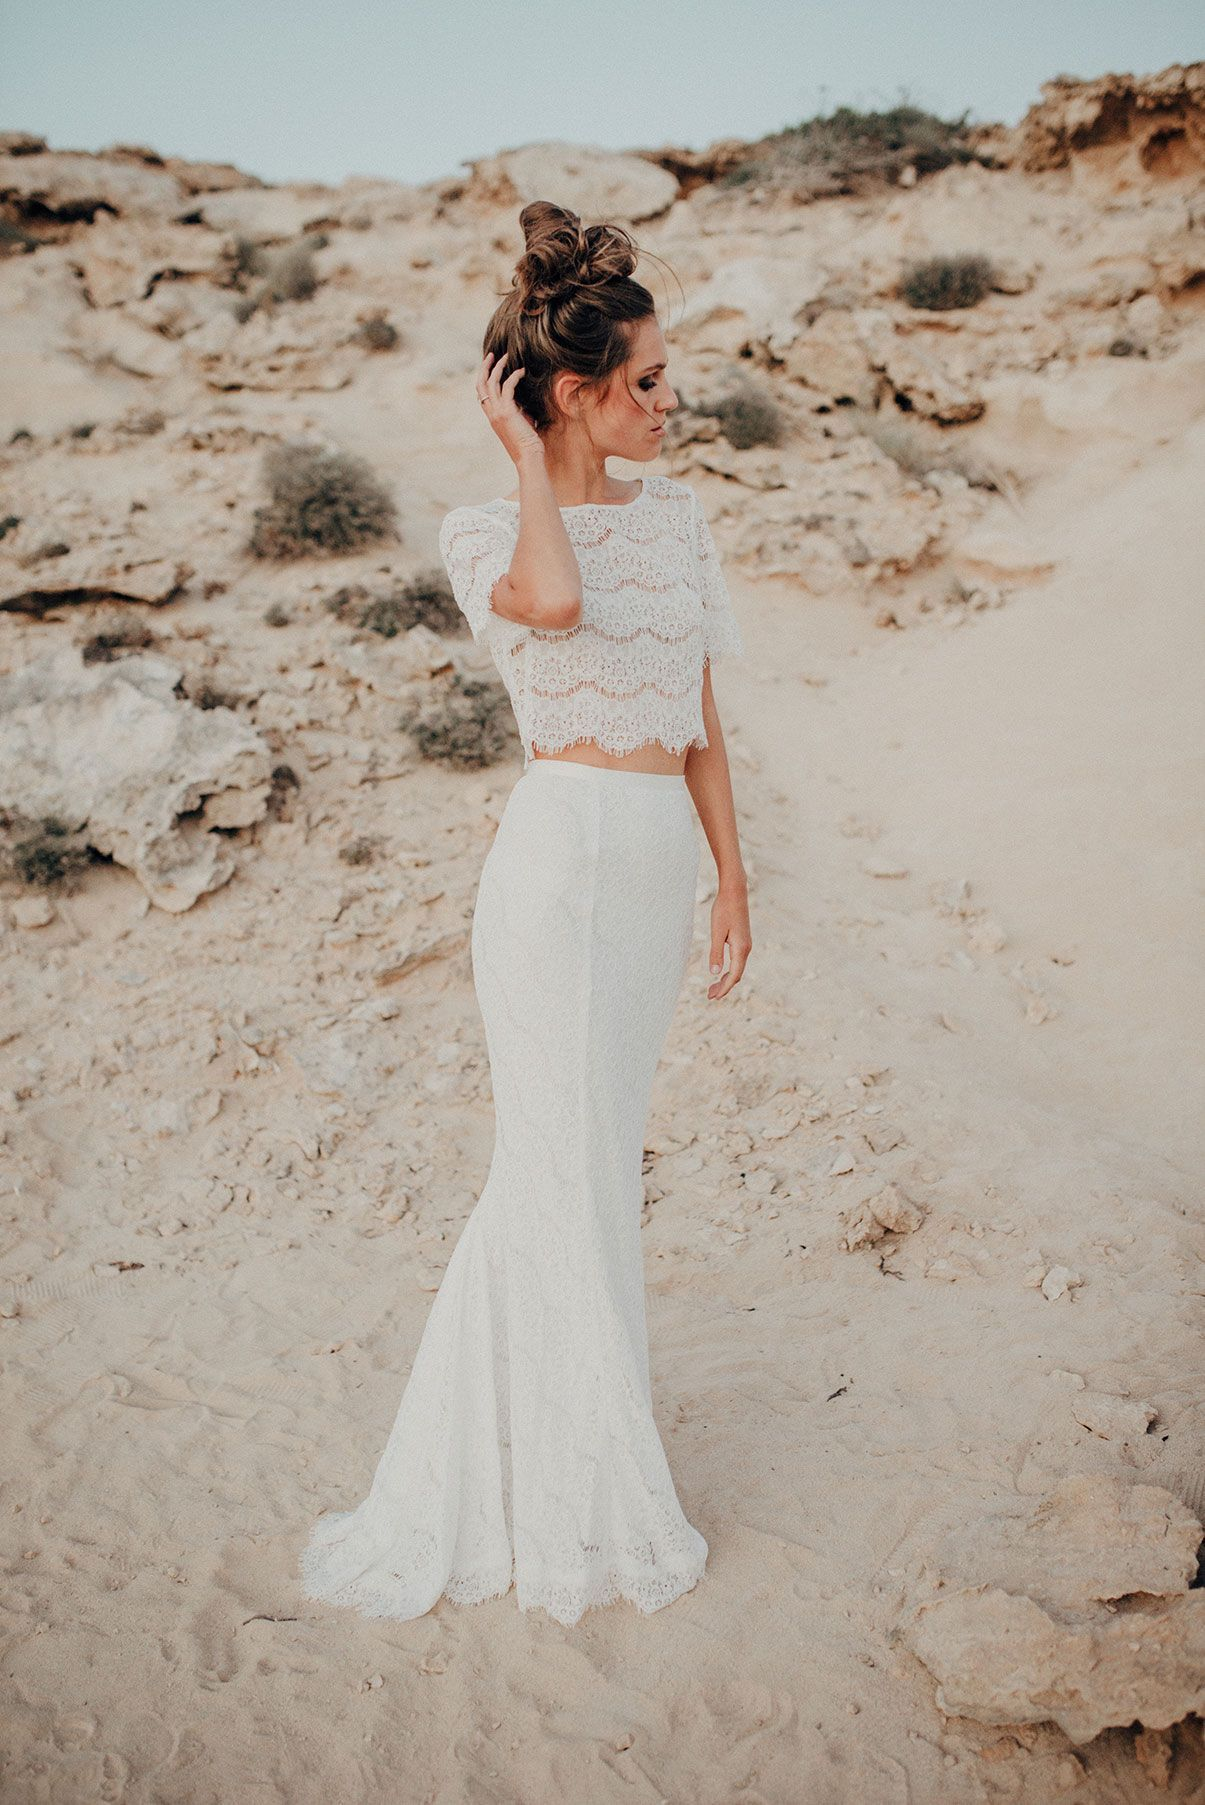 Bridal Separates Wedding Separates Two Piece Beach Wedding Dress